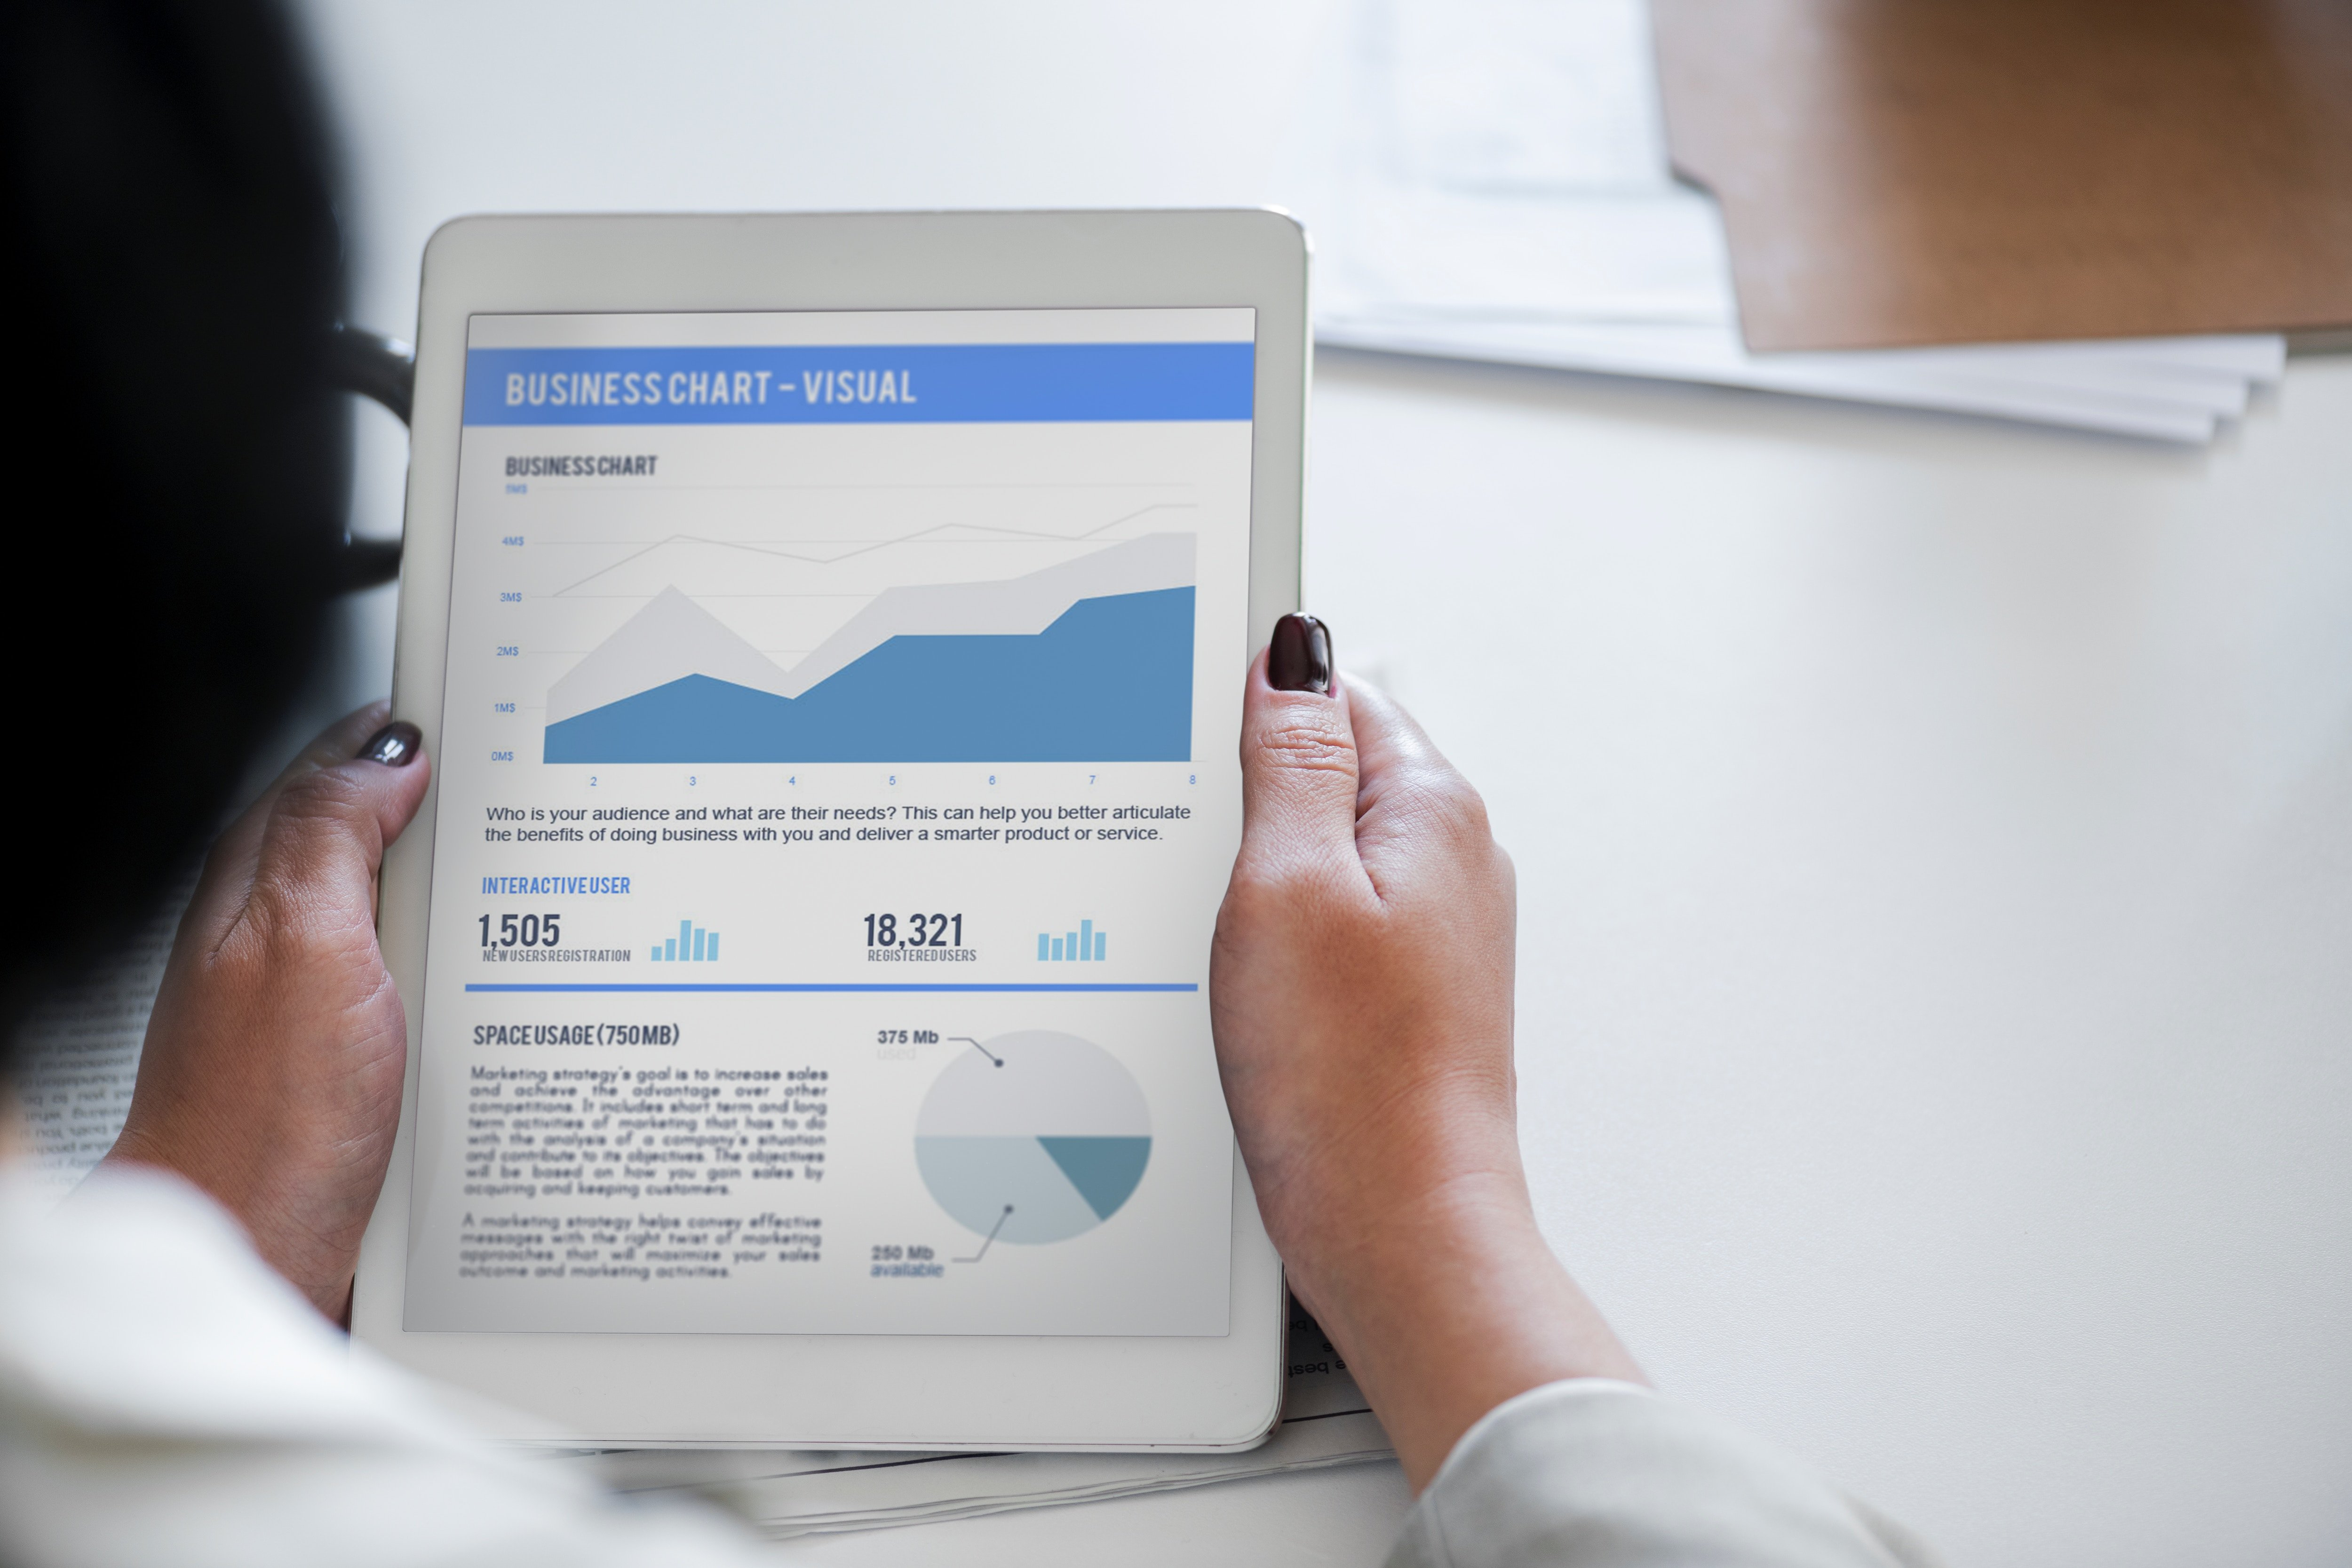 How business analytics can help improve every part of your business